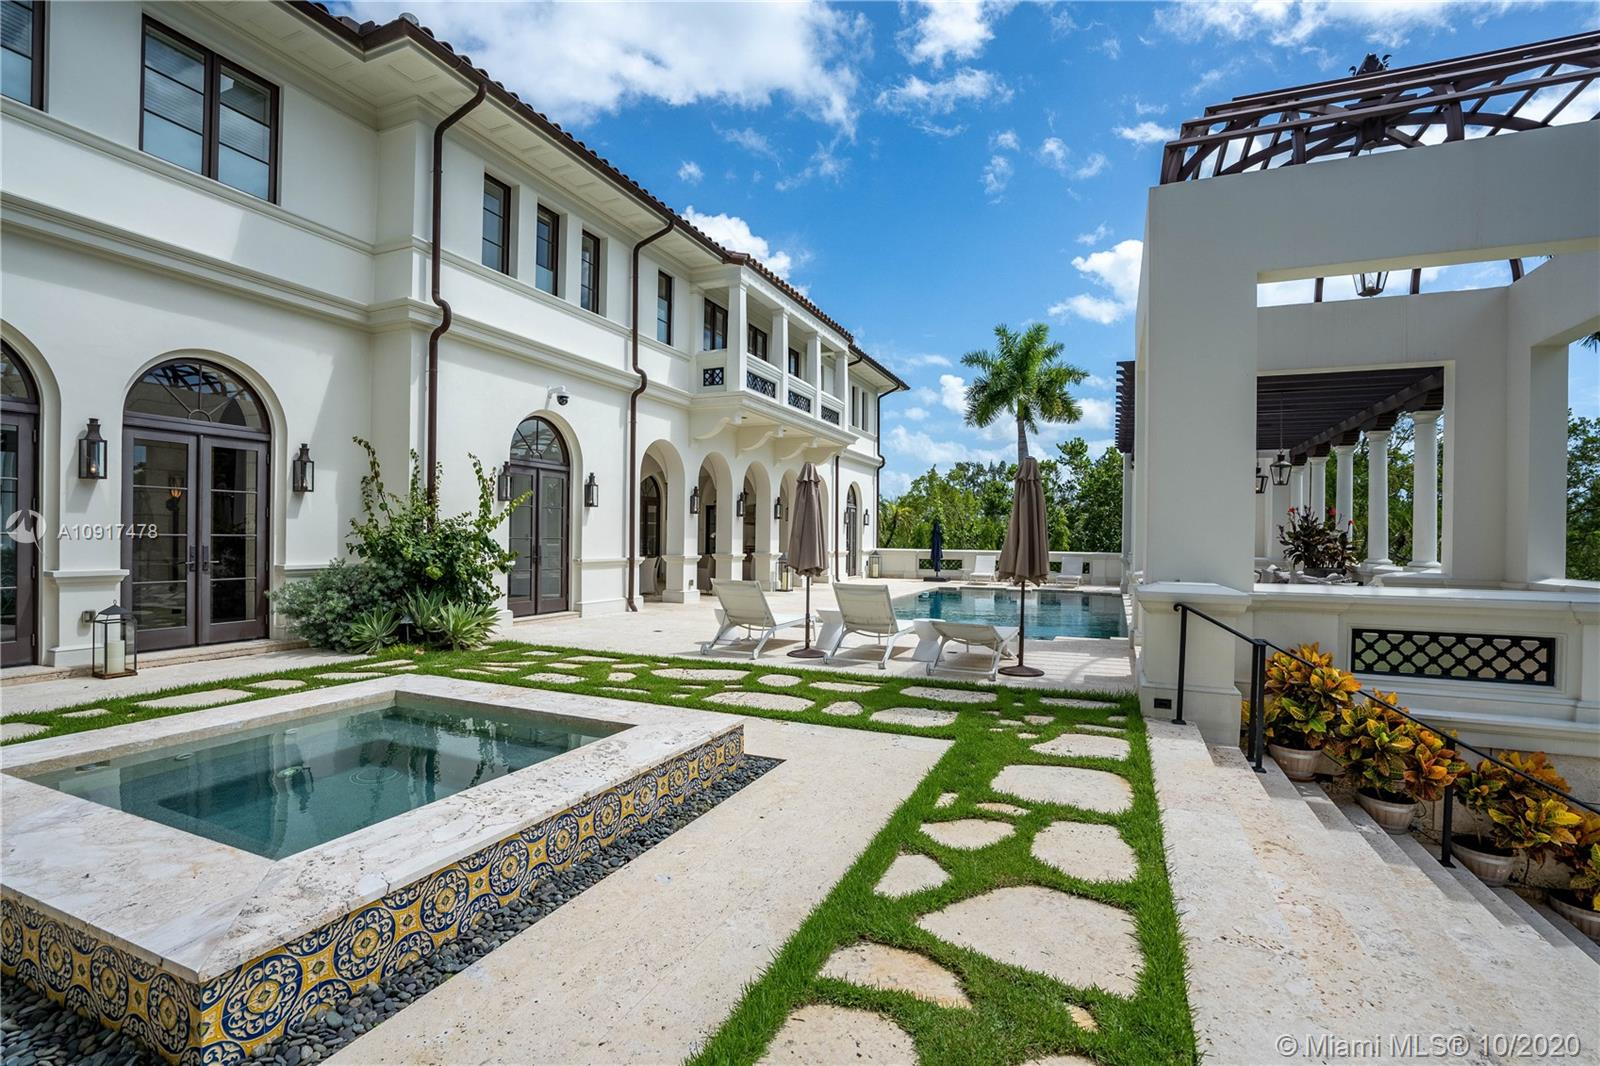 300 Costanera rd- coral-gables-fl-33143-a10917478-Pic15